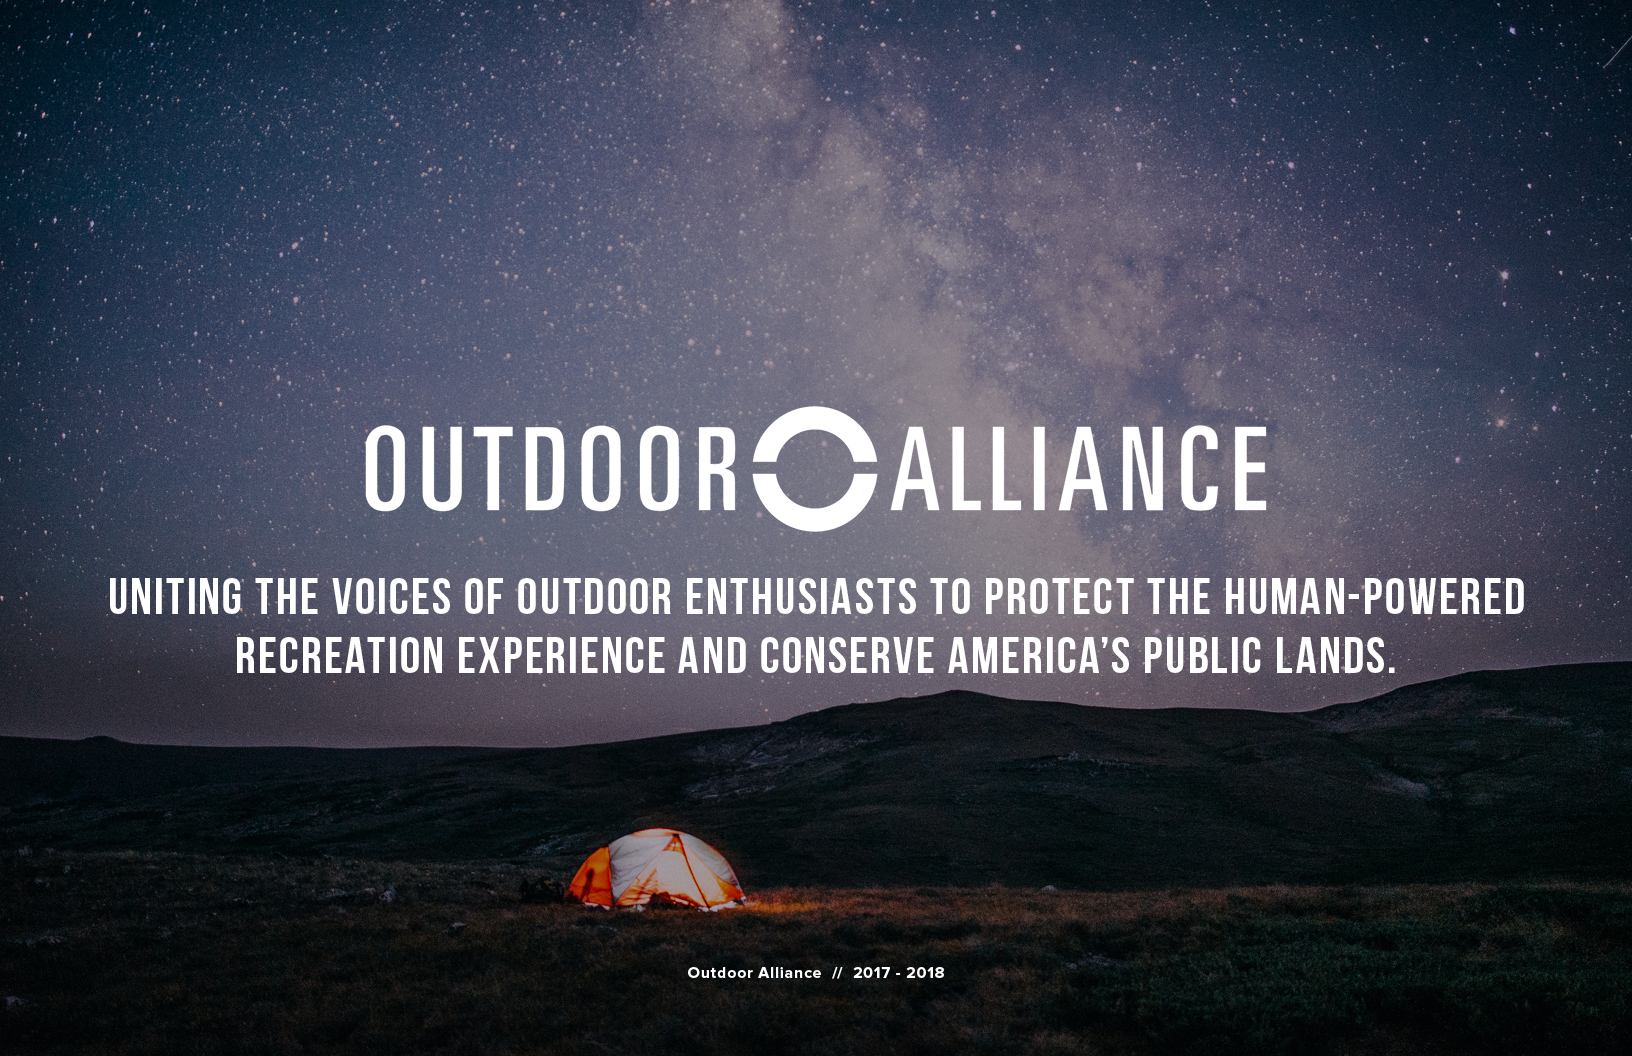 OutdoorAlliance_pitchdeck.jpg